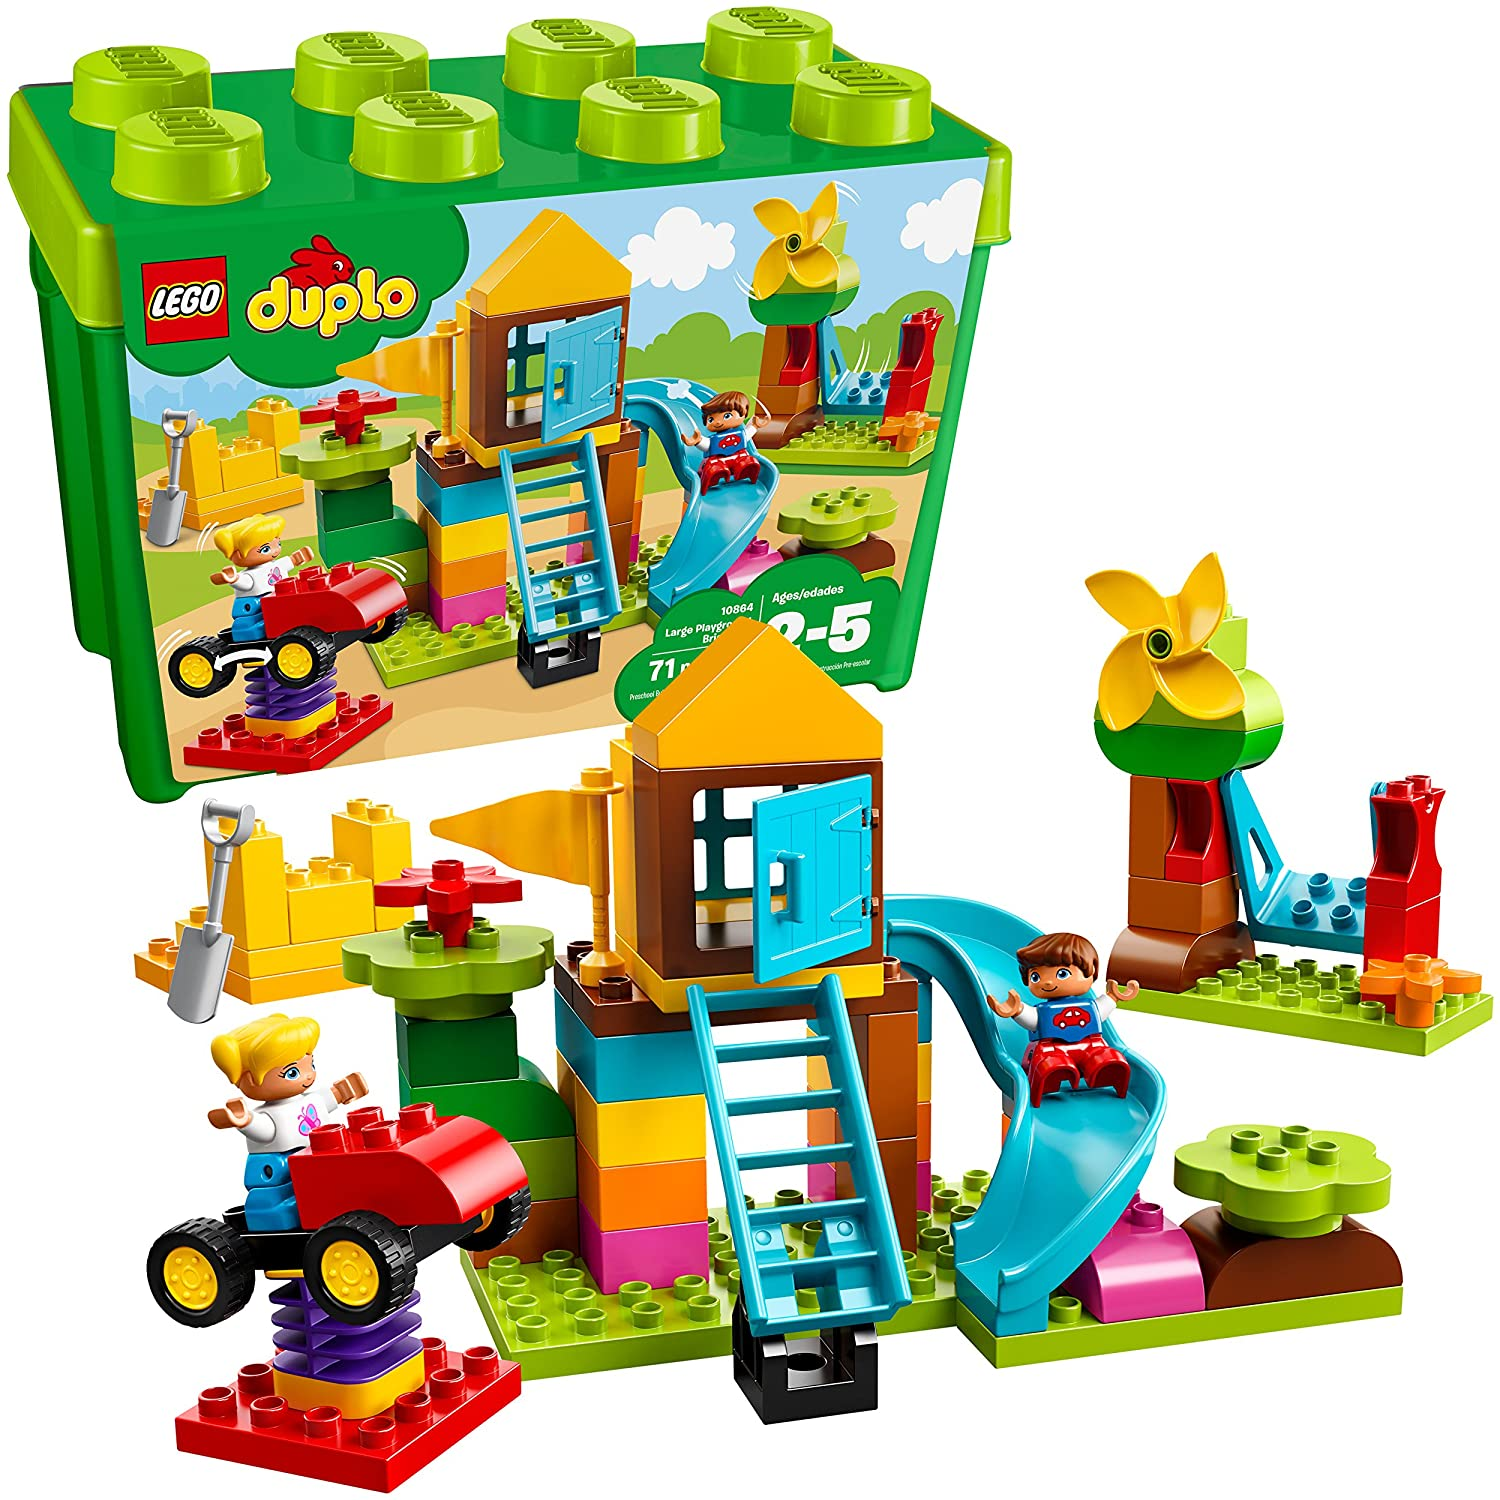 Lego Duplo: Hộp gạch xây dựng 10864